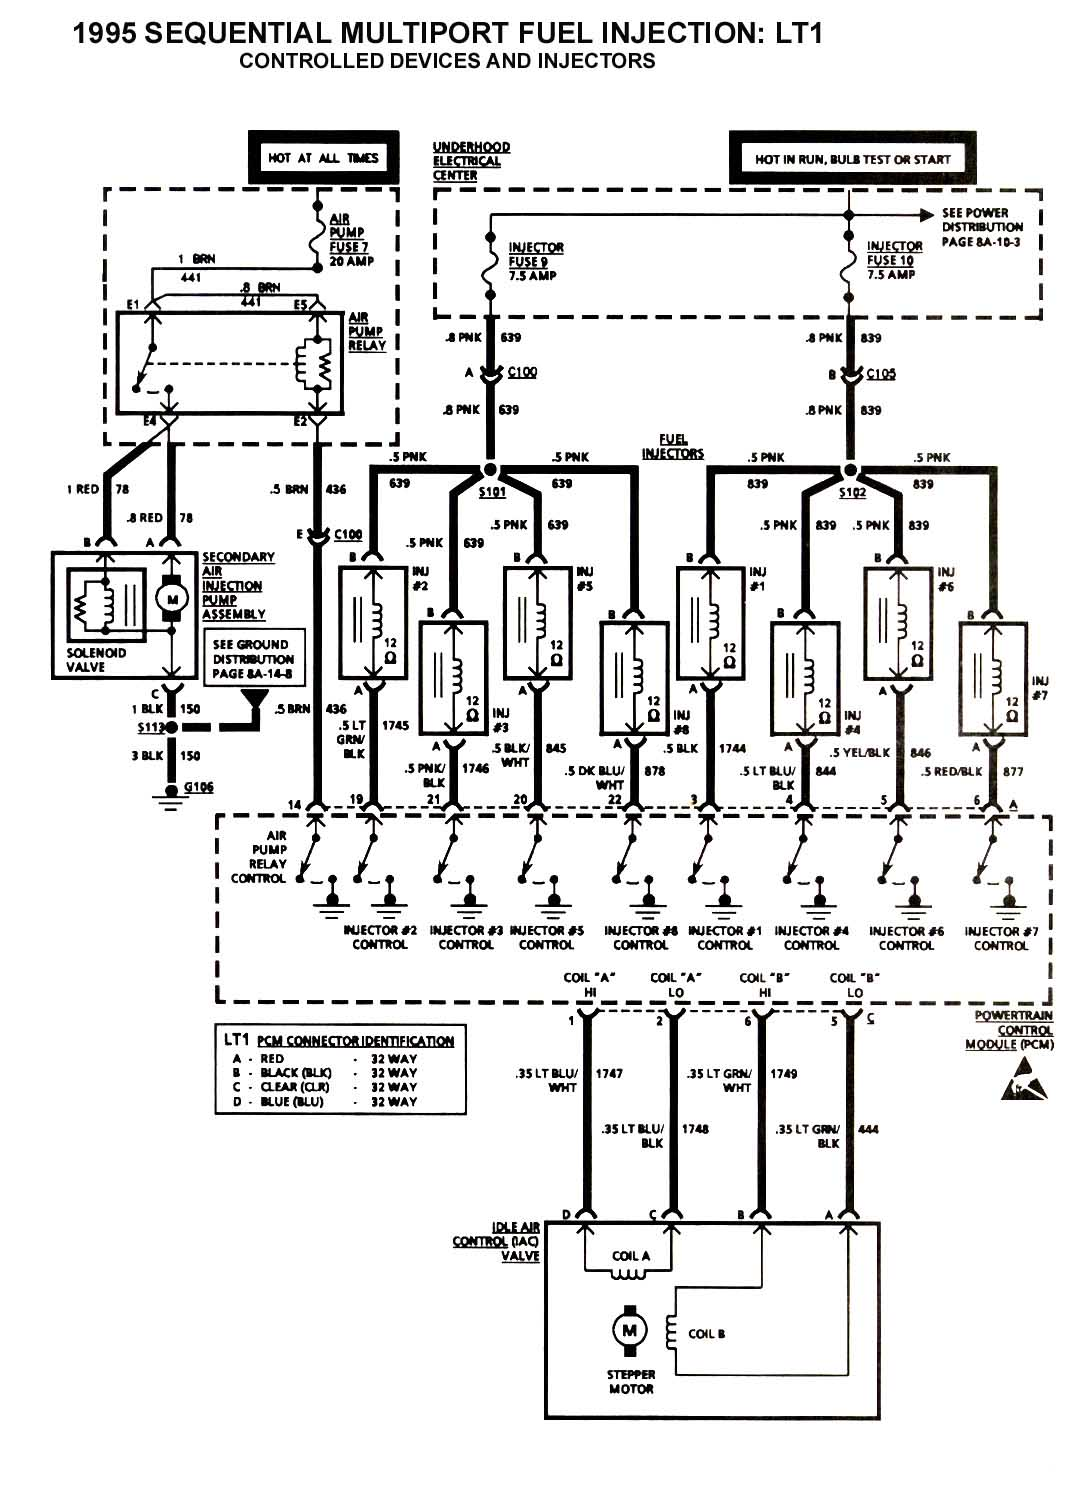 Wiring Diagram For 96 Camaro